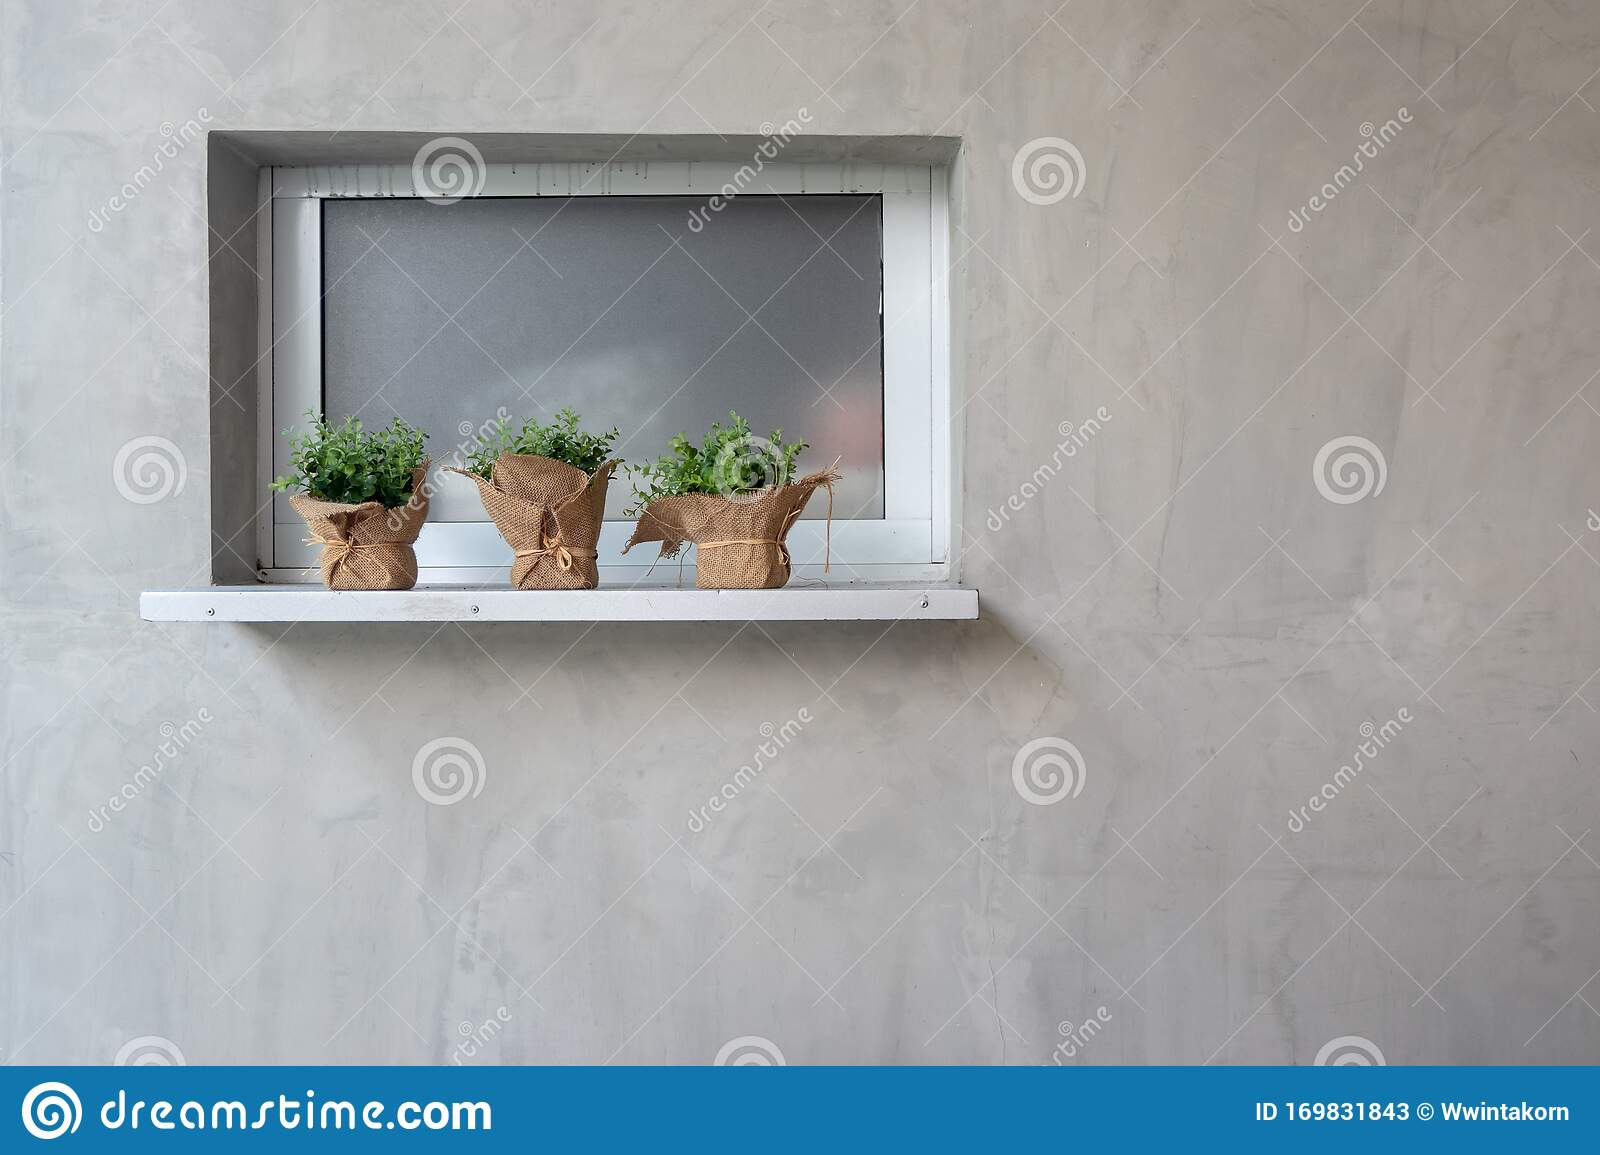 Small Plant In Pot On Counter Shelf With Concrete Wall Background Stock Image Image Of Indoor Flowerpot 169831843